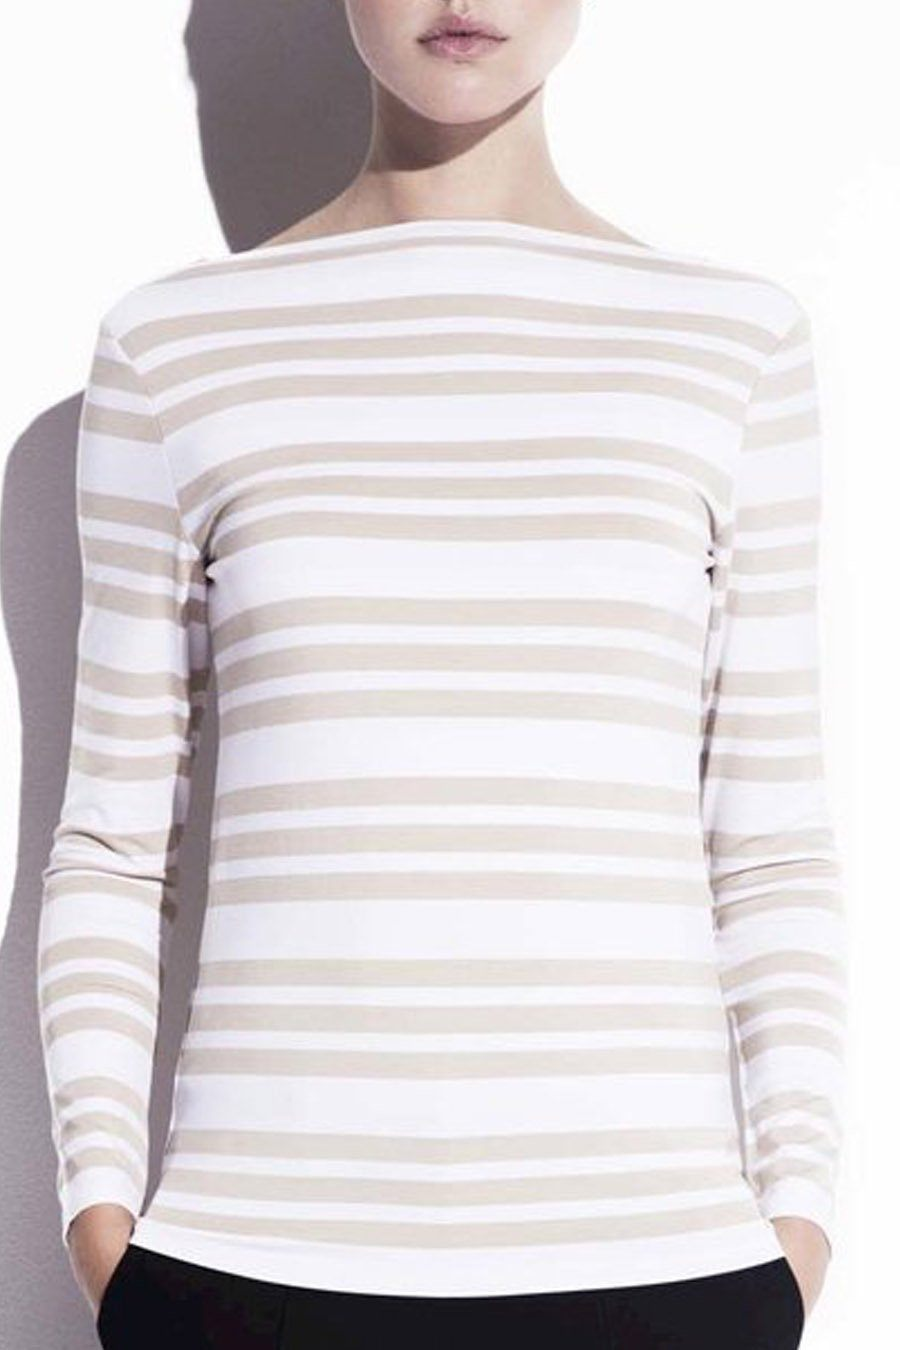 CANCIRER TOP - STRIPED SAND Top Stylein